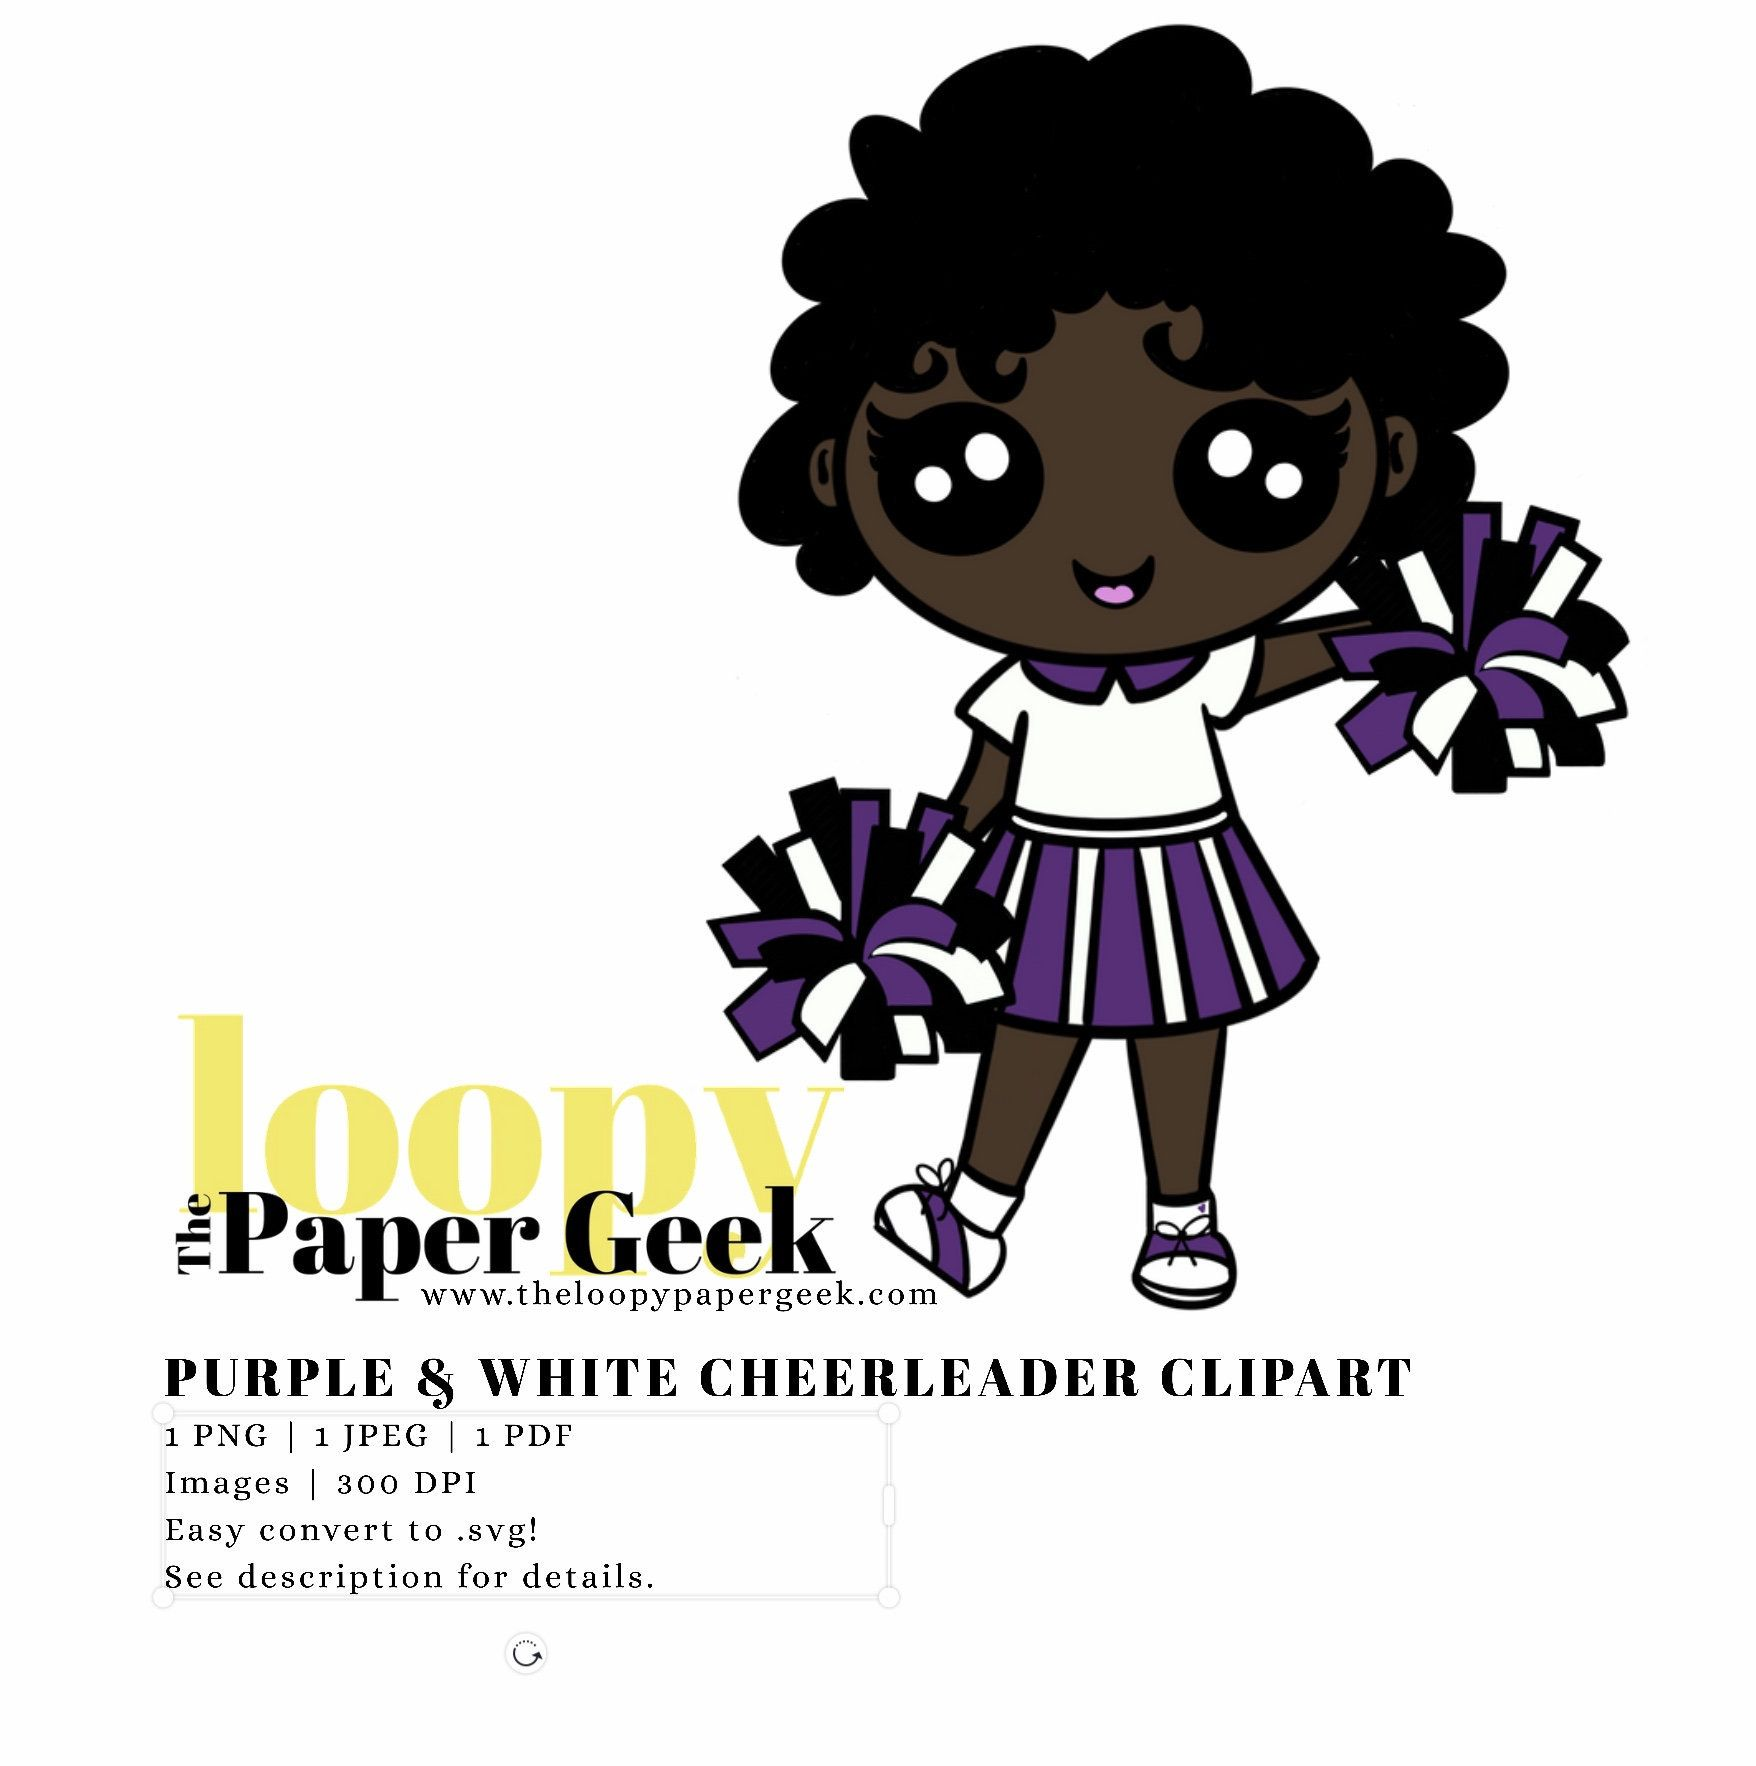 Purple and White Cheerleader ClipArt Illustration Easy